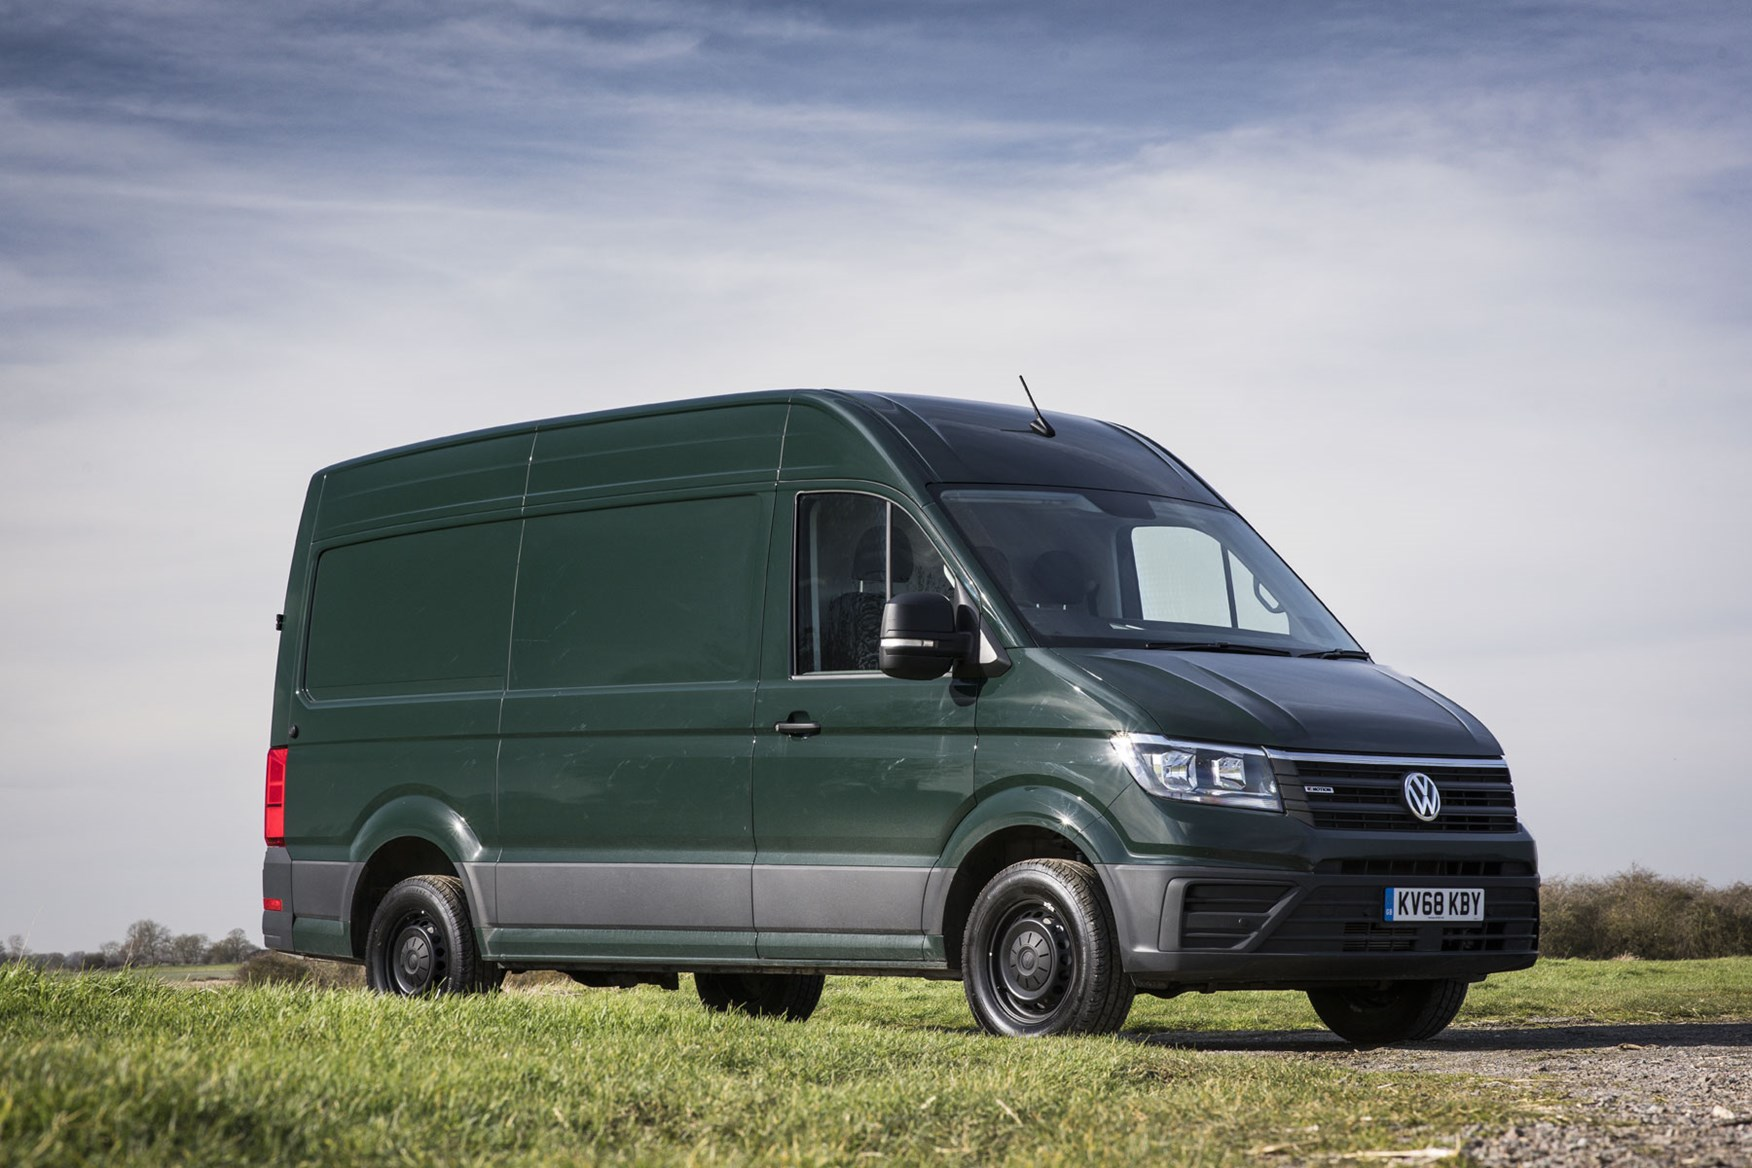 VW Crafter 4Motion review - Ontario Green, front view